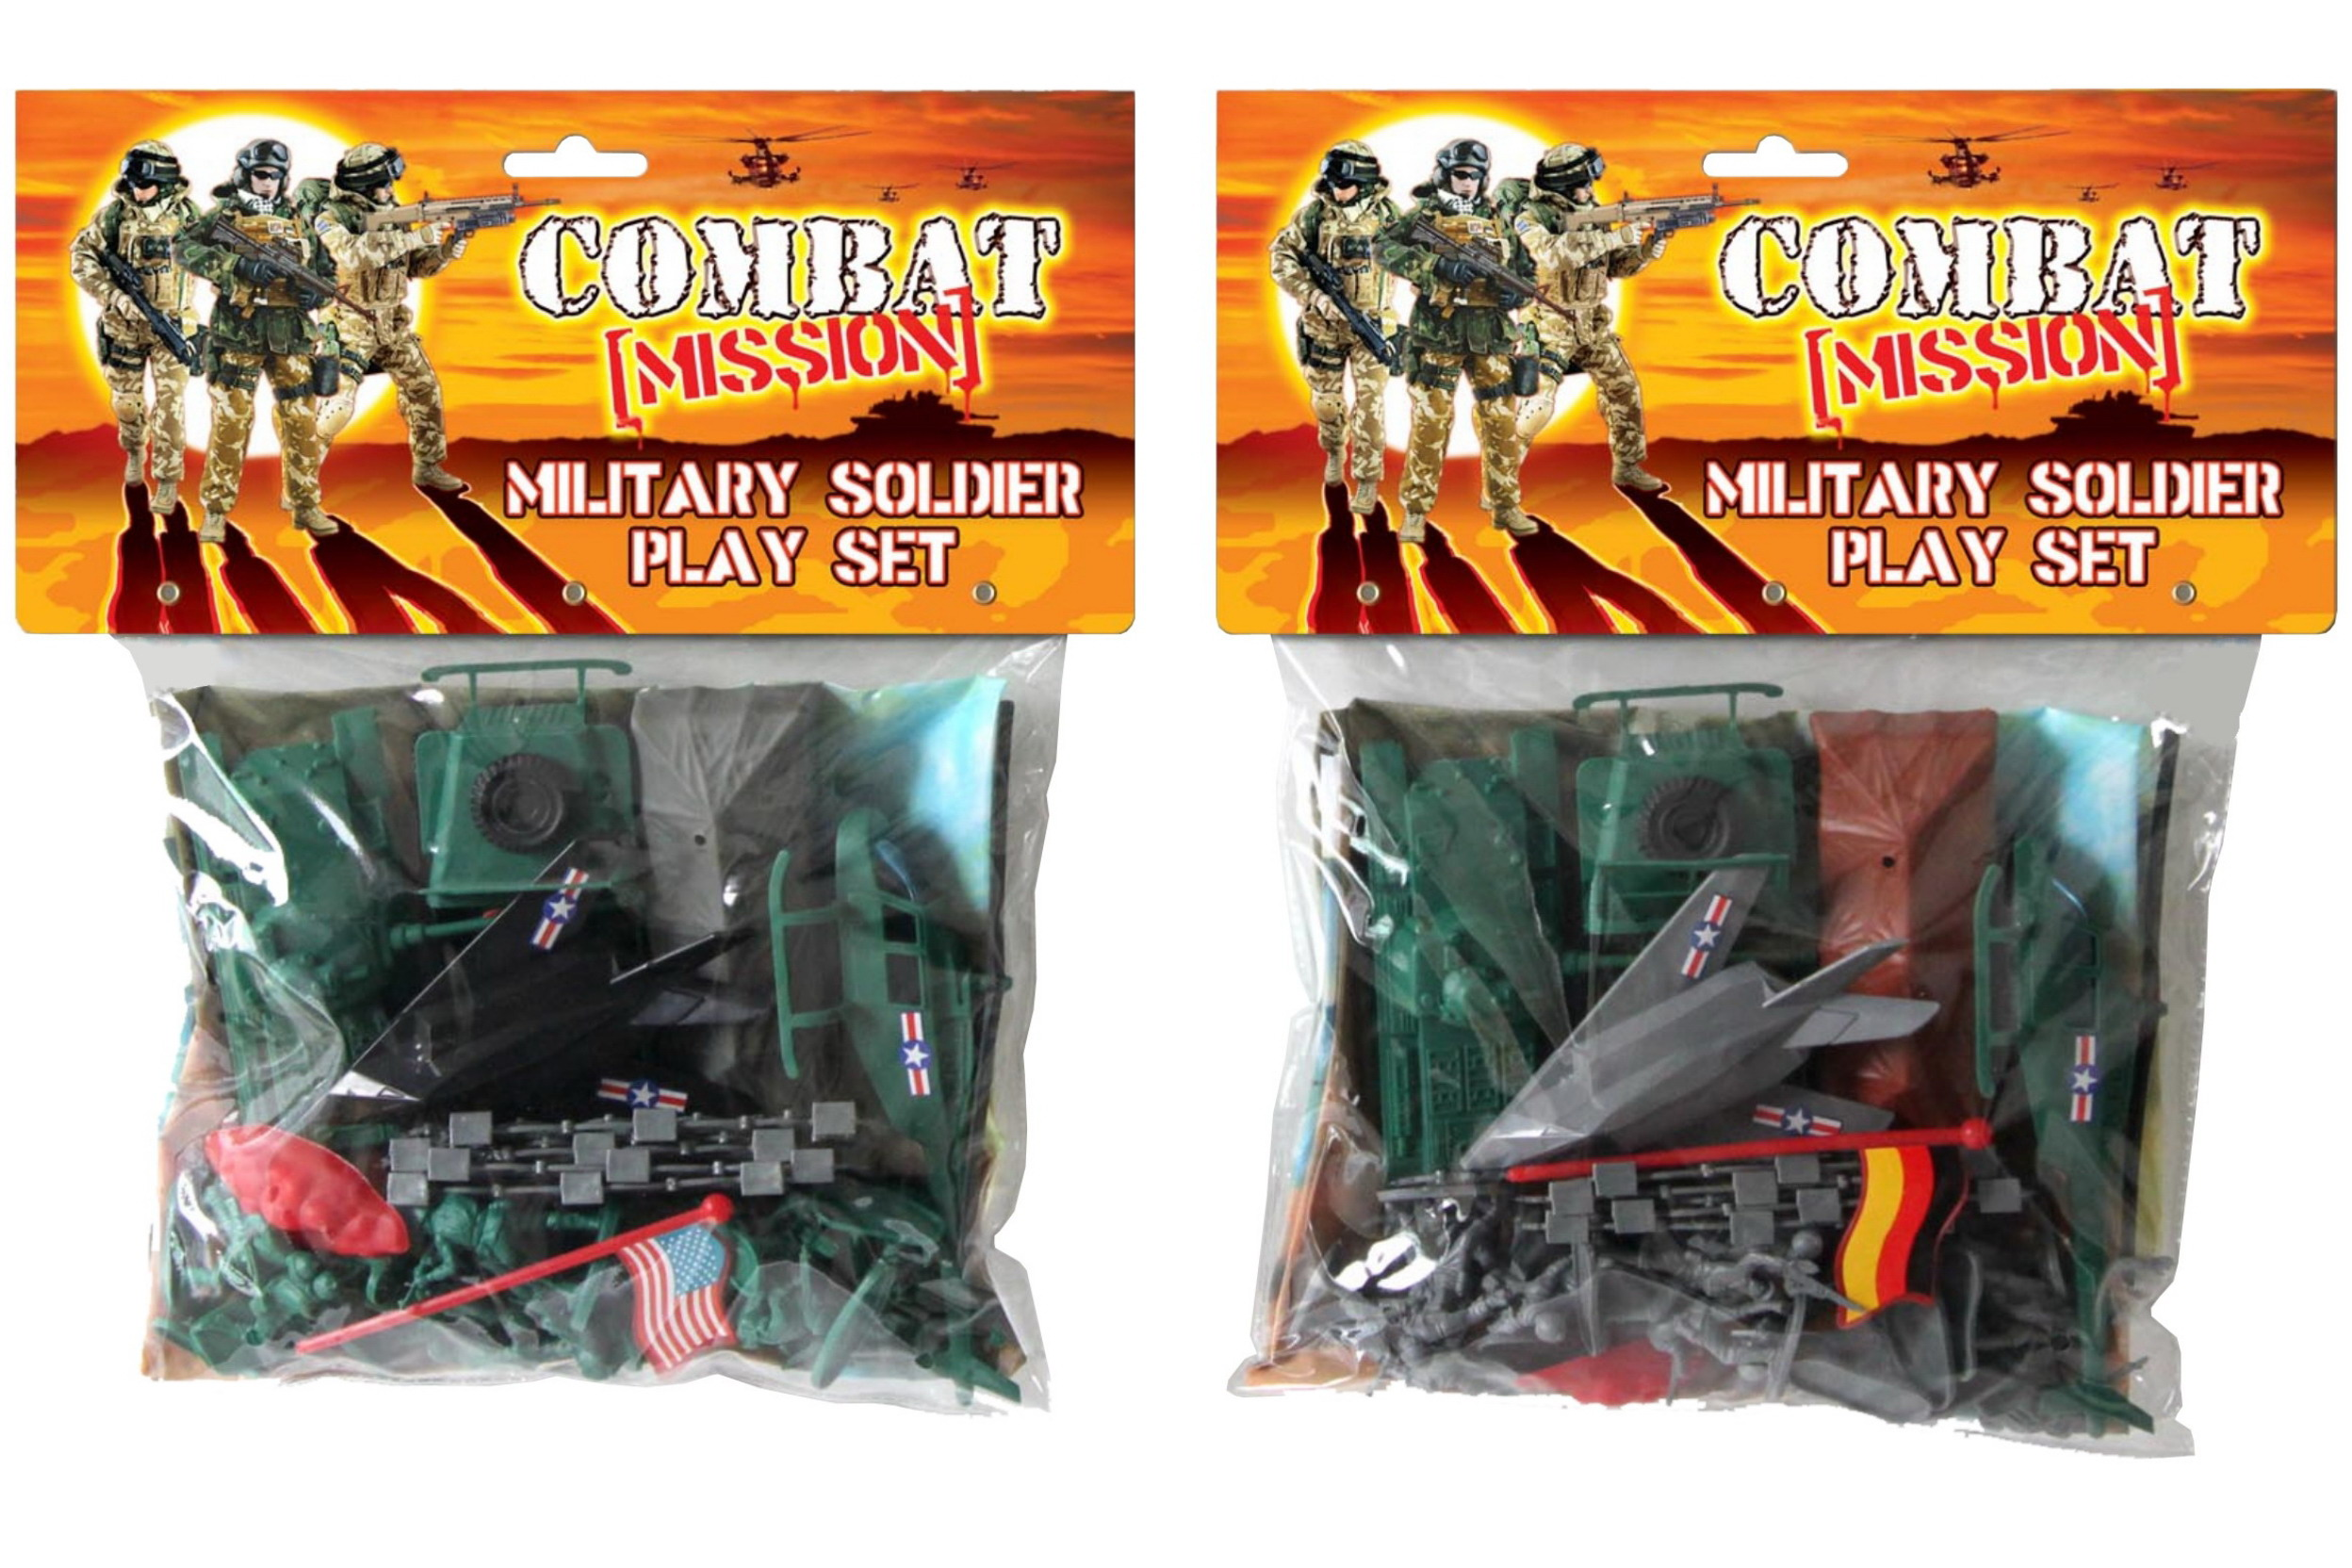 Military Soldier Play Set - Combat Mission